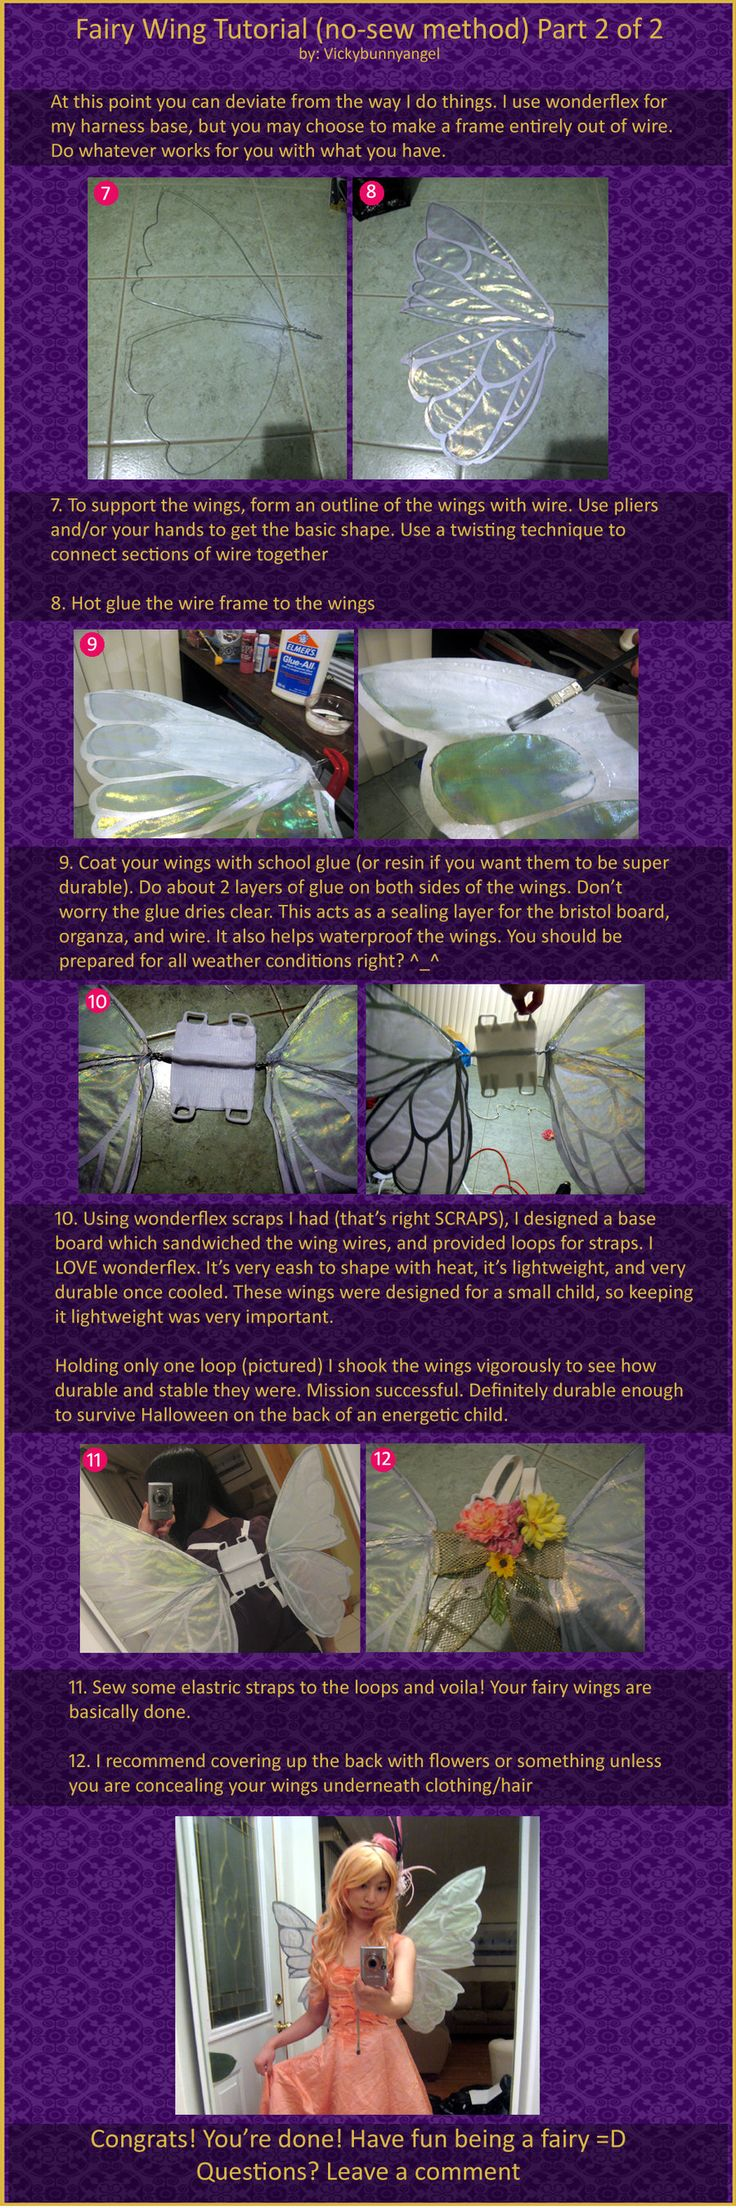 No Sew Fairy Wings Tutorial Part 2 of 2 by vickybunnyangel on deviantART